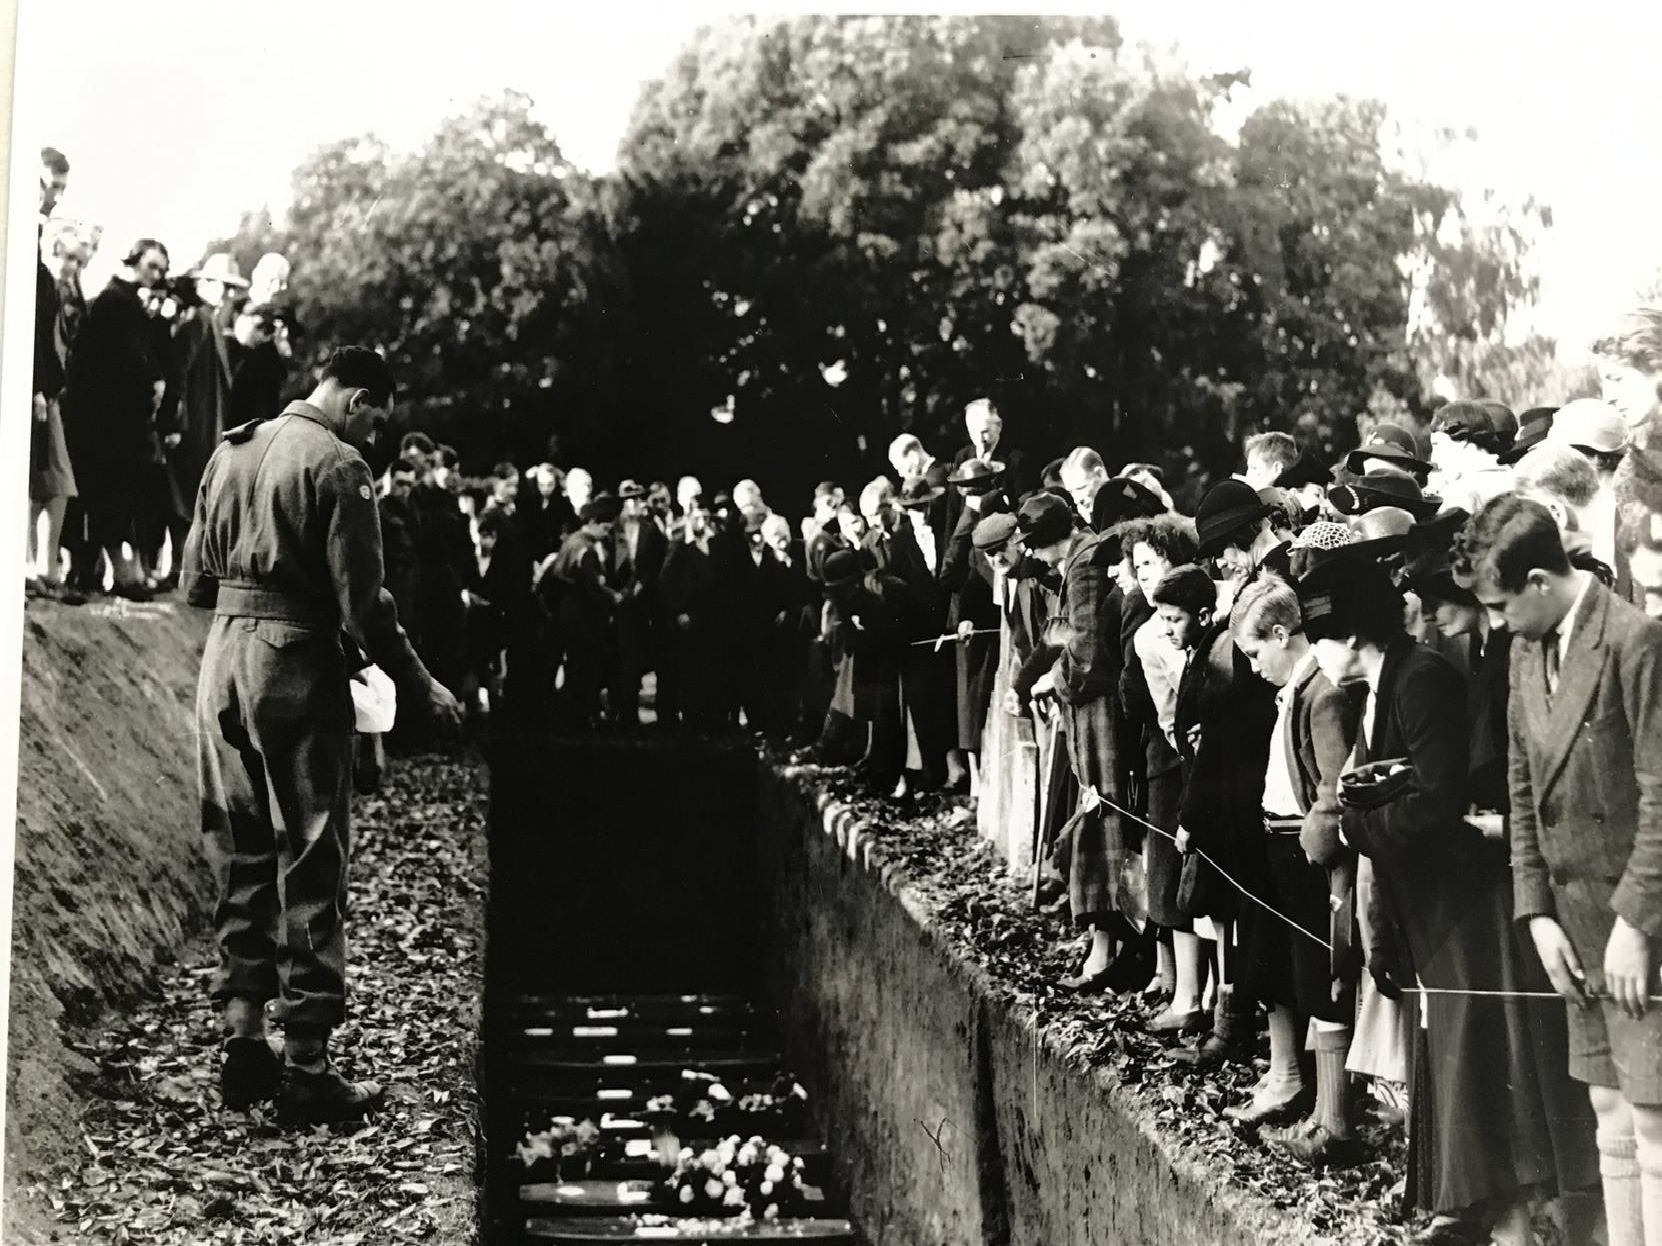 Petworth comes together to attend the funeral of those who lost their lives. Picture via West Sussex Records Office